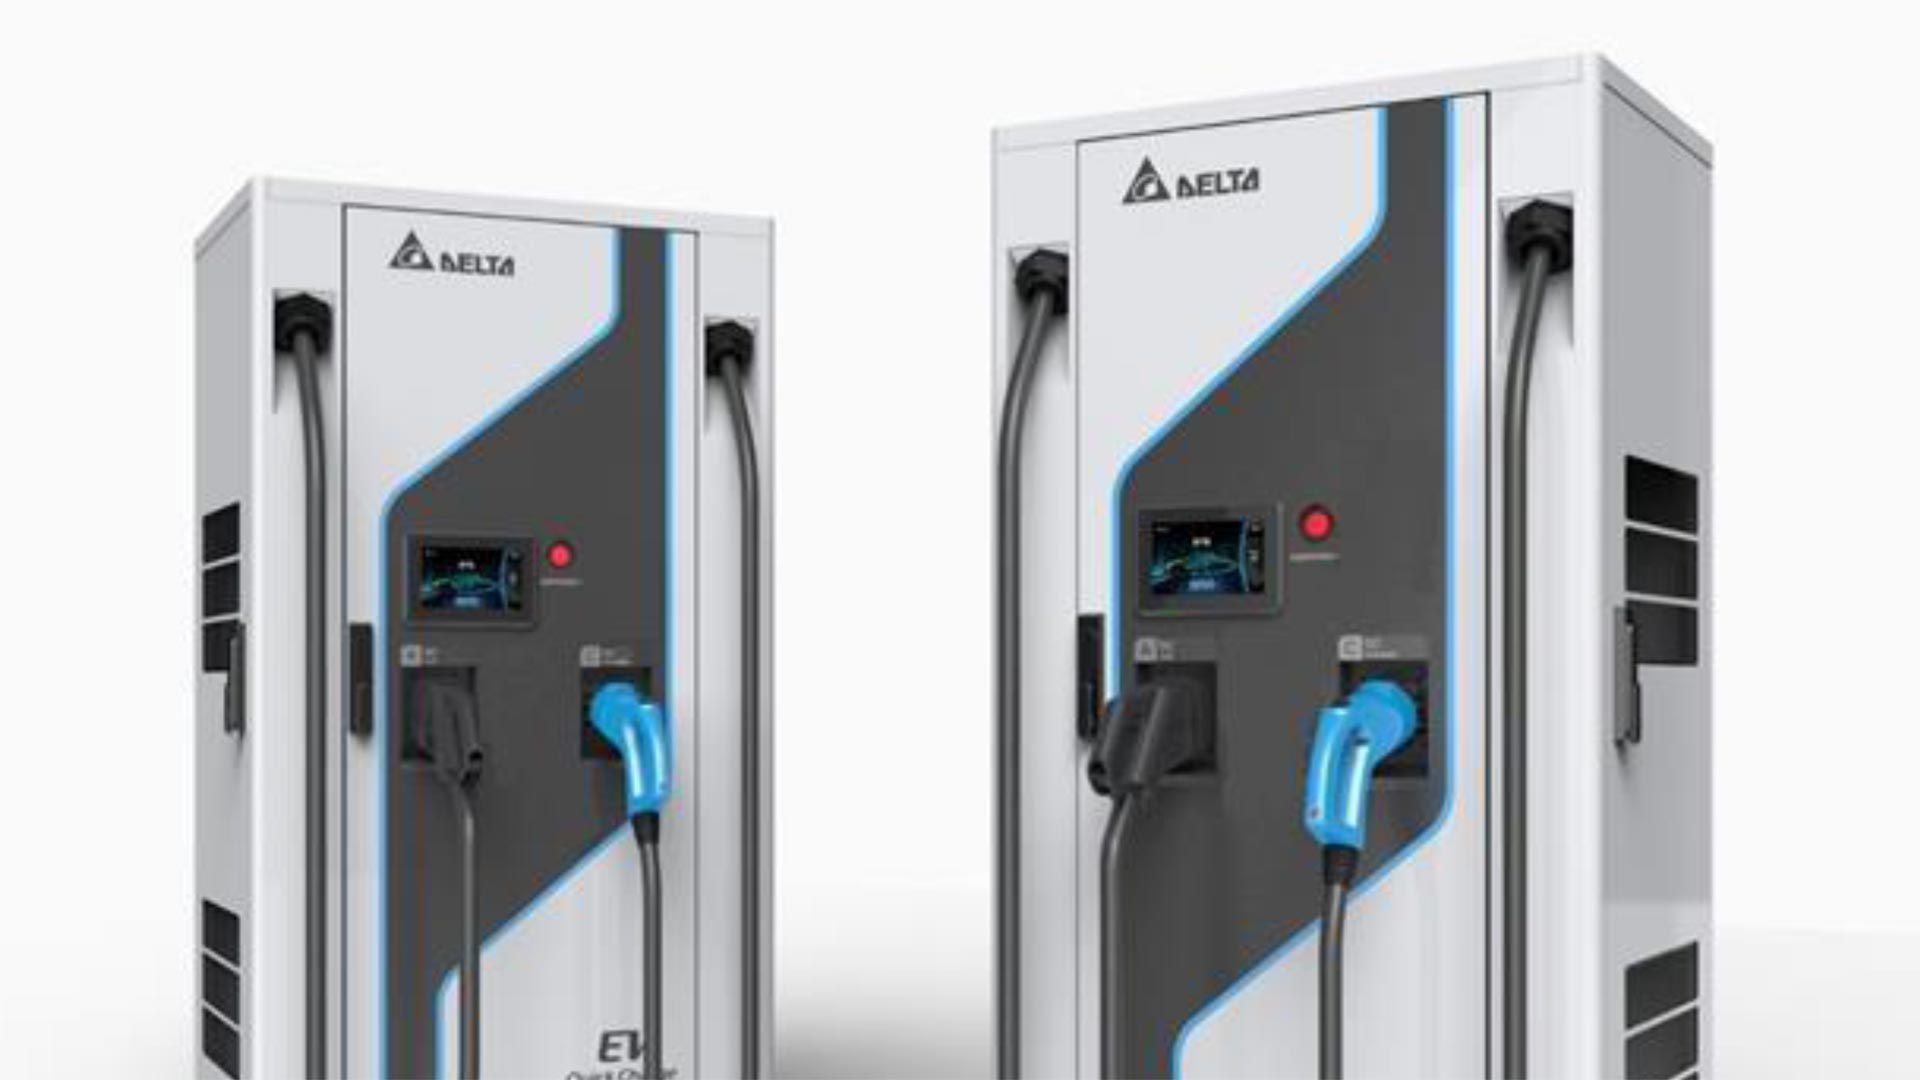 Delta extreme fast car chargers